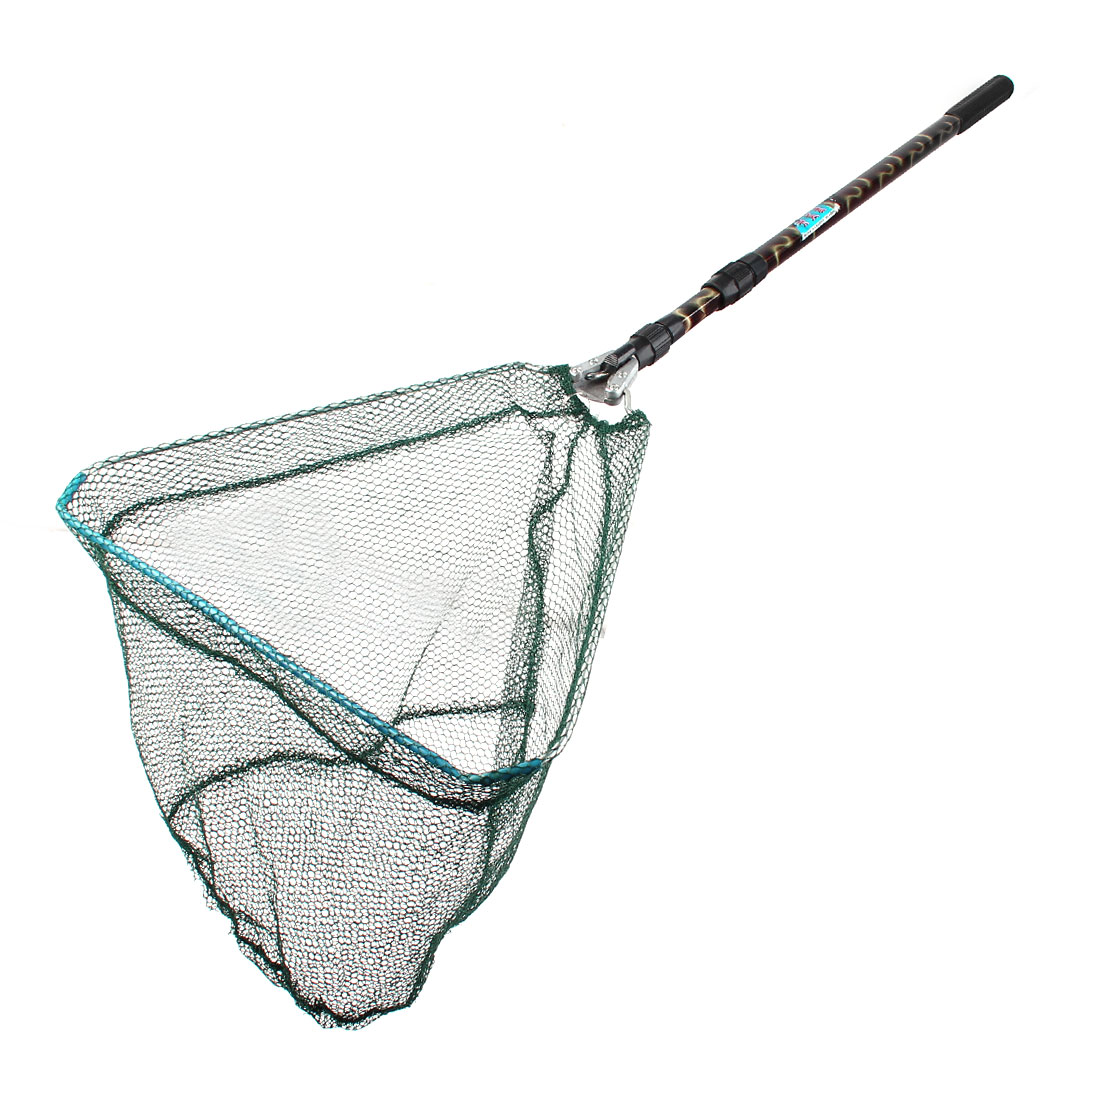 Green Nylon 6 x 6mm Hex Mesh 2 Sections Telescopic Grip Triangle Fishing Net